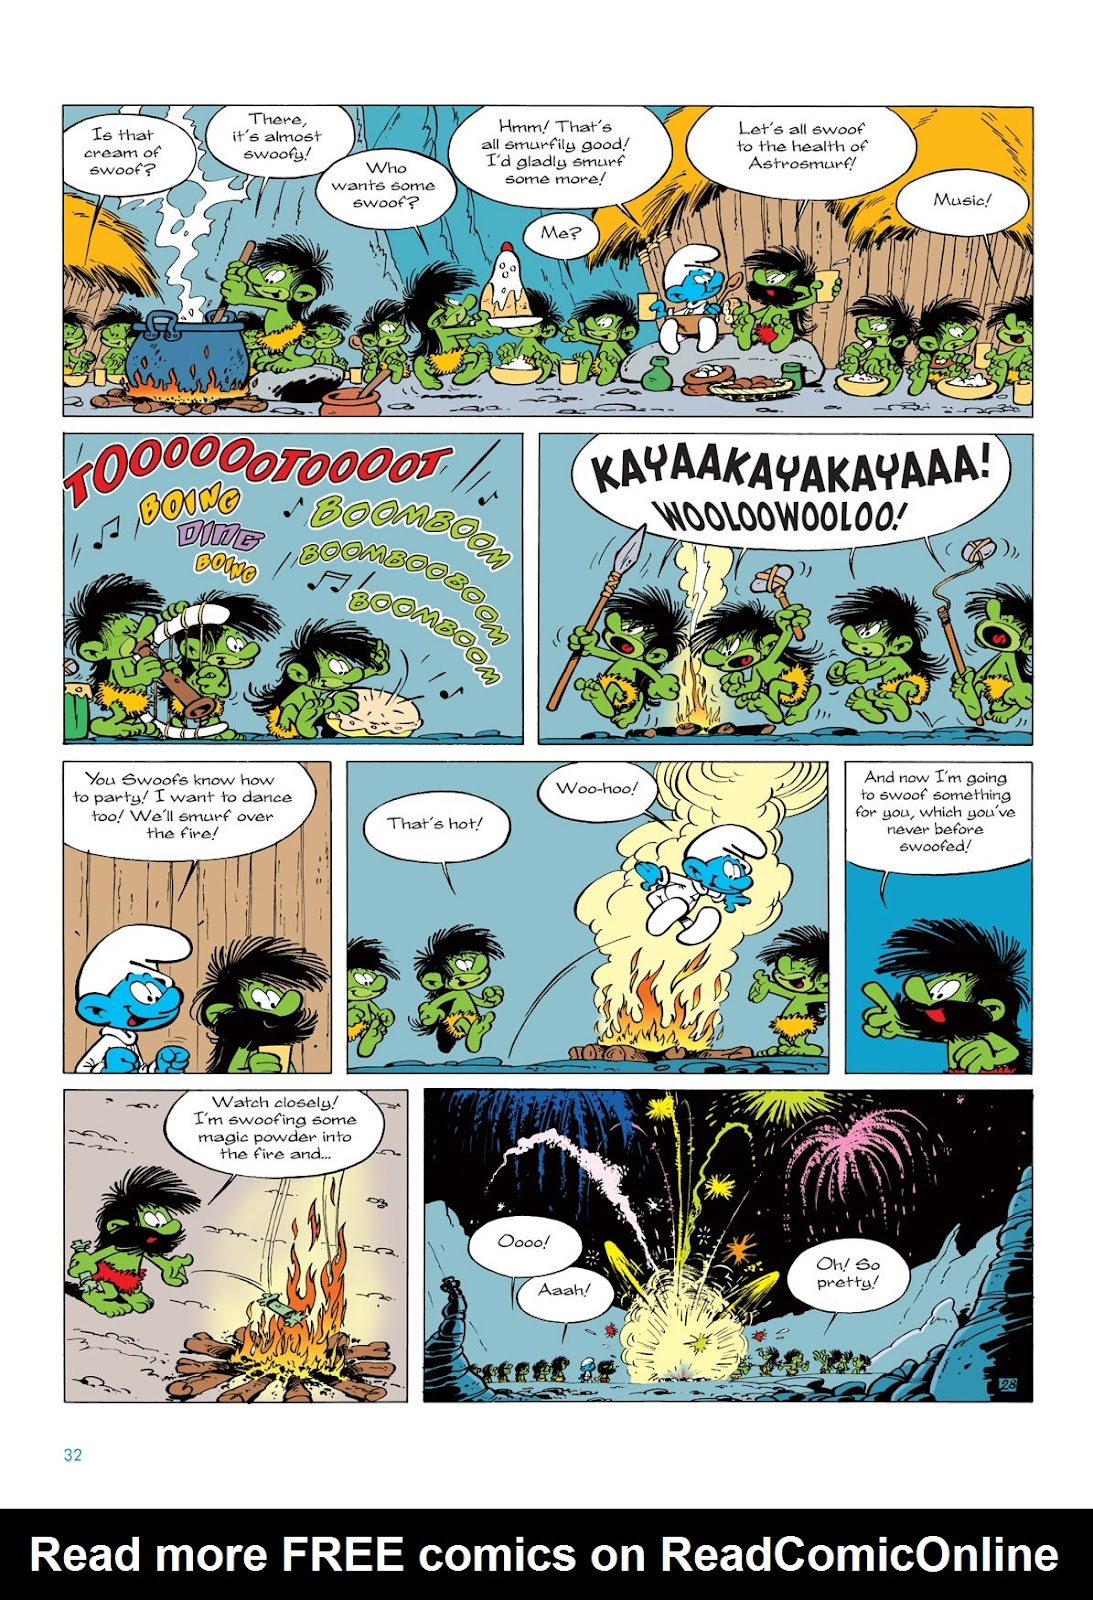 Read online The Smurfs comic -  Issue #7 - 32